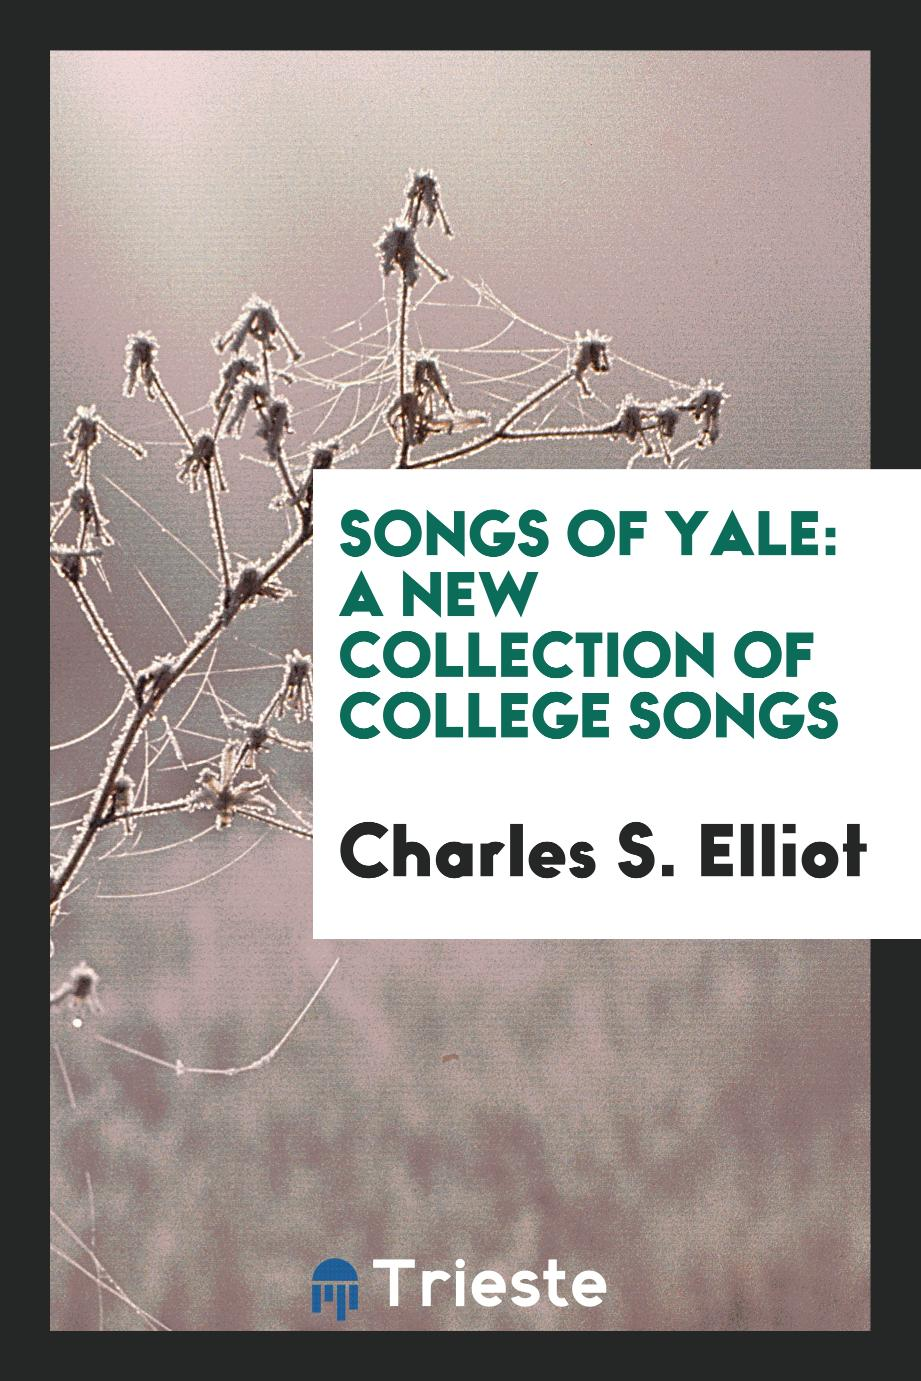 Songs of Yale: A New Collection of College Songs